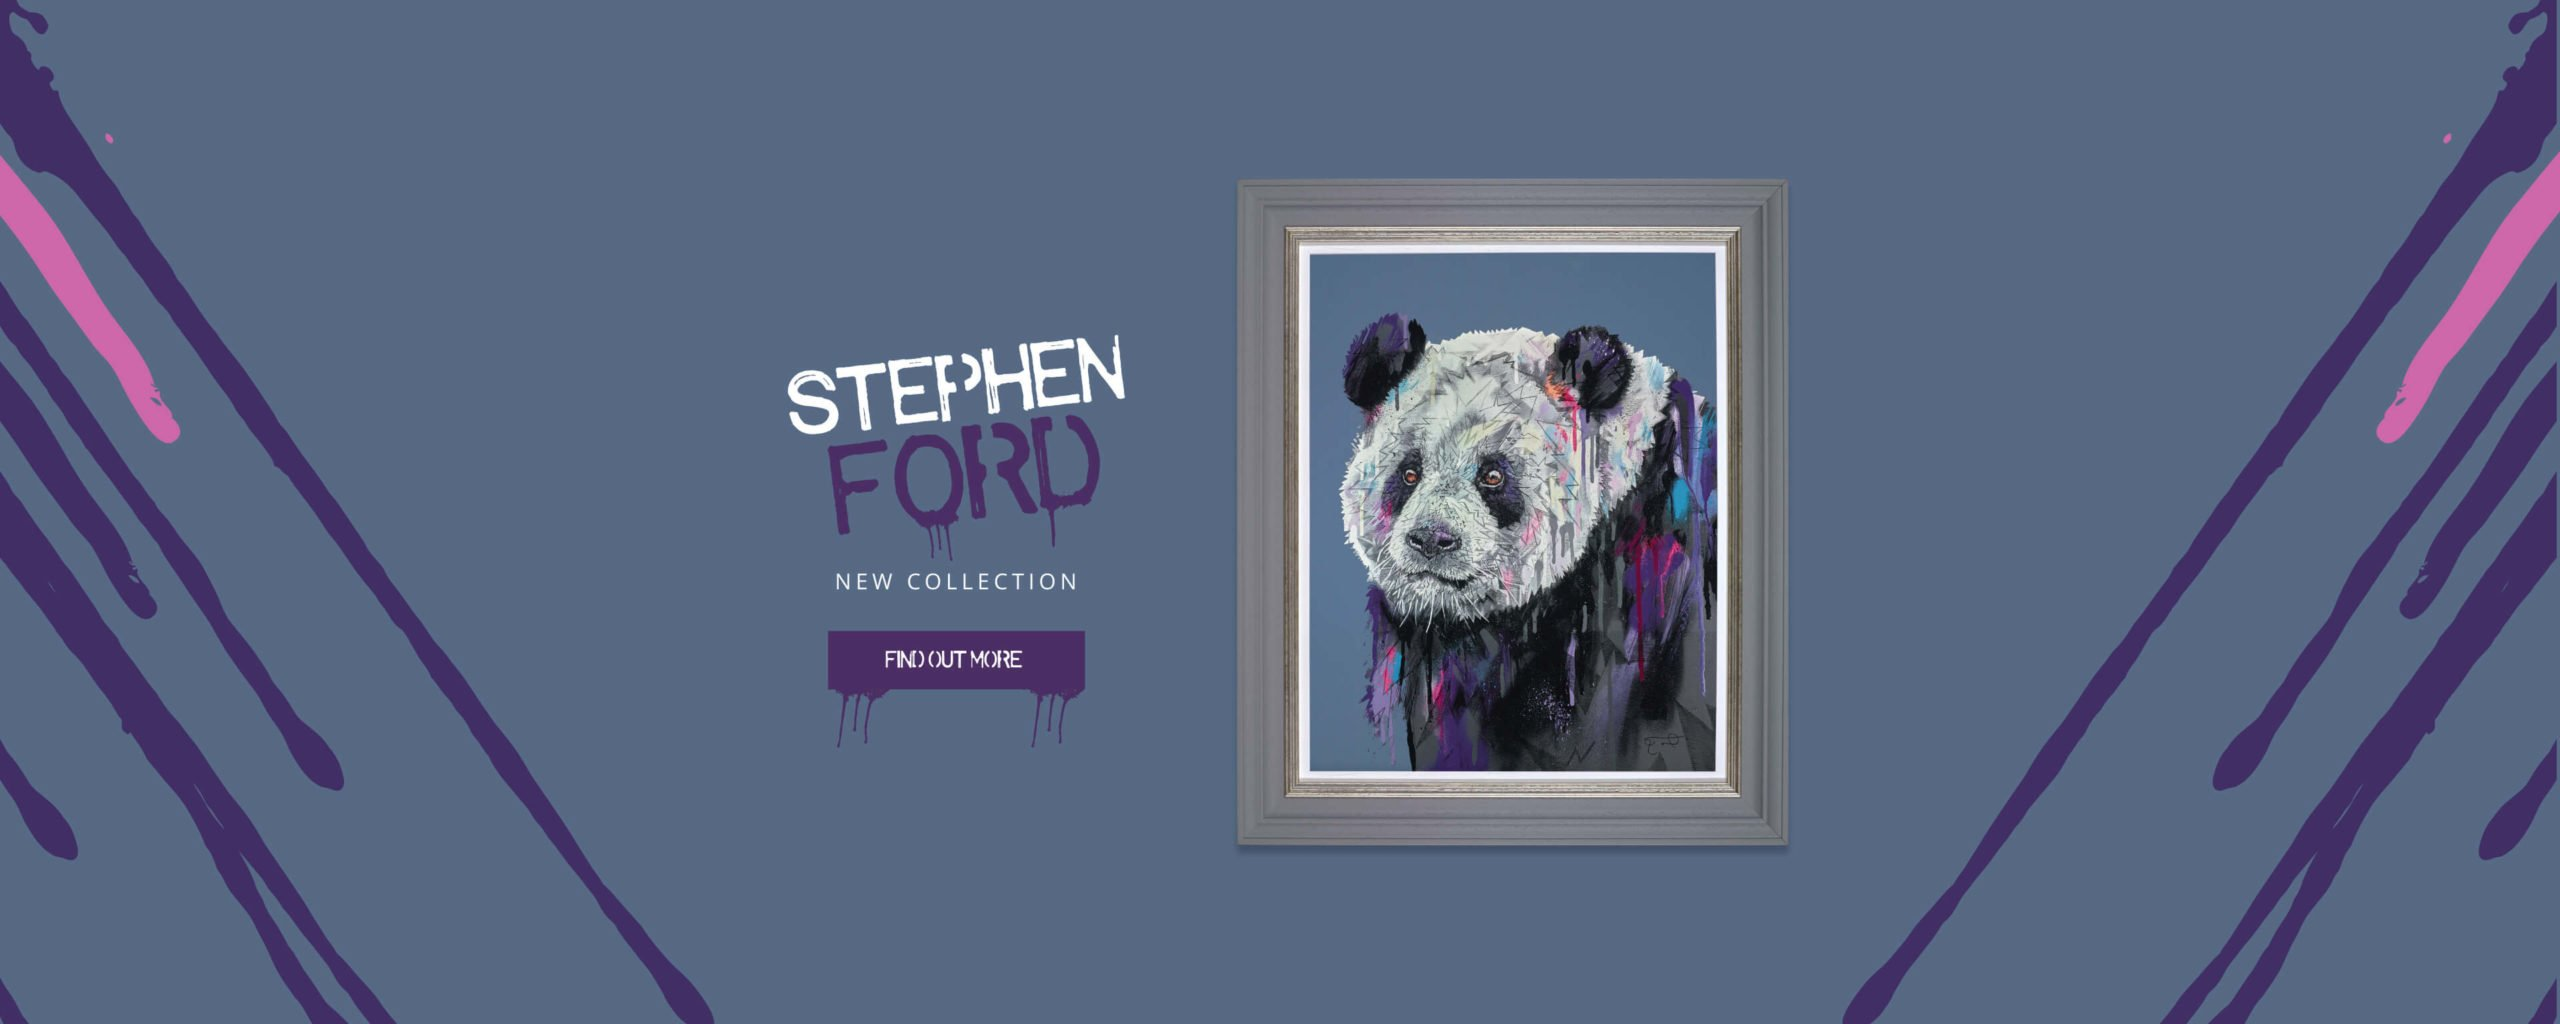 Stephen Ford Latest Collection